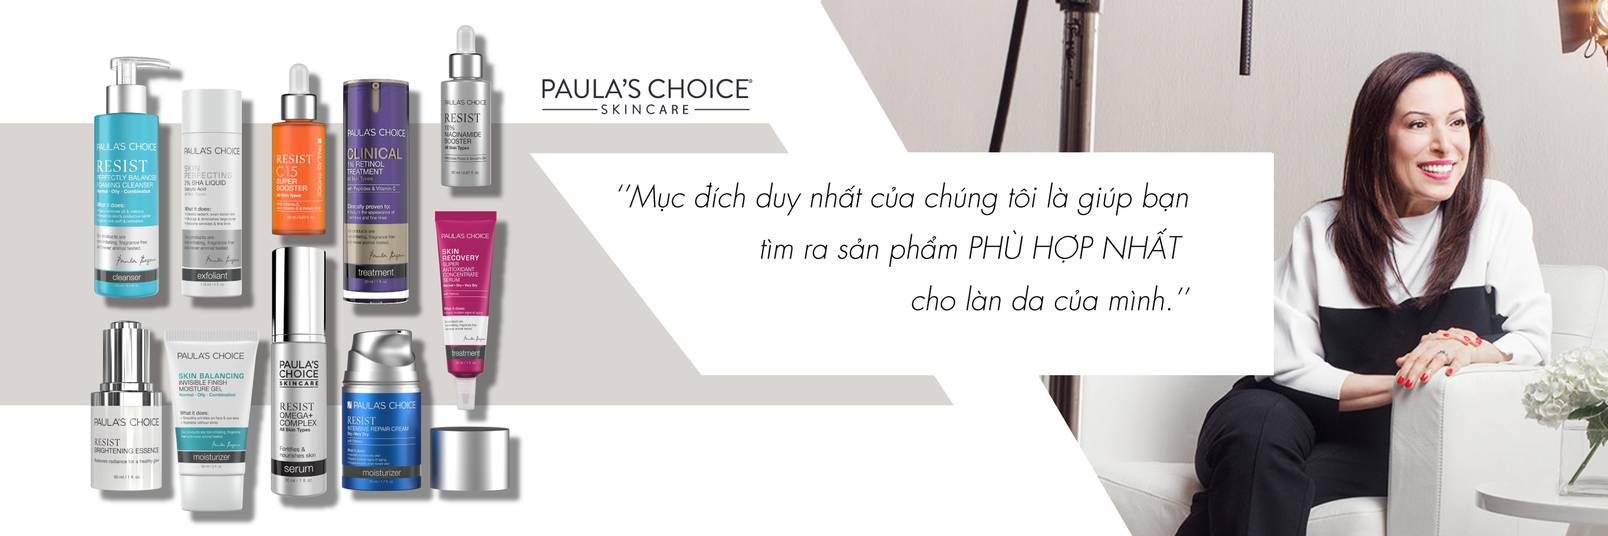 Paula's Choice Vietnam